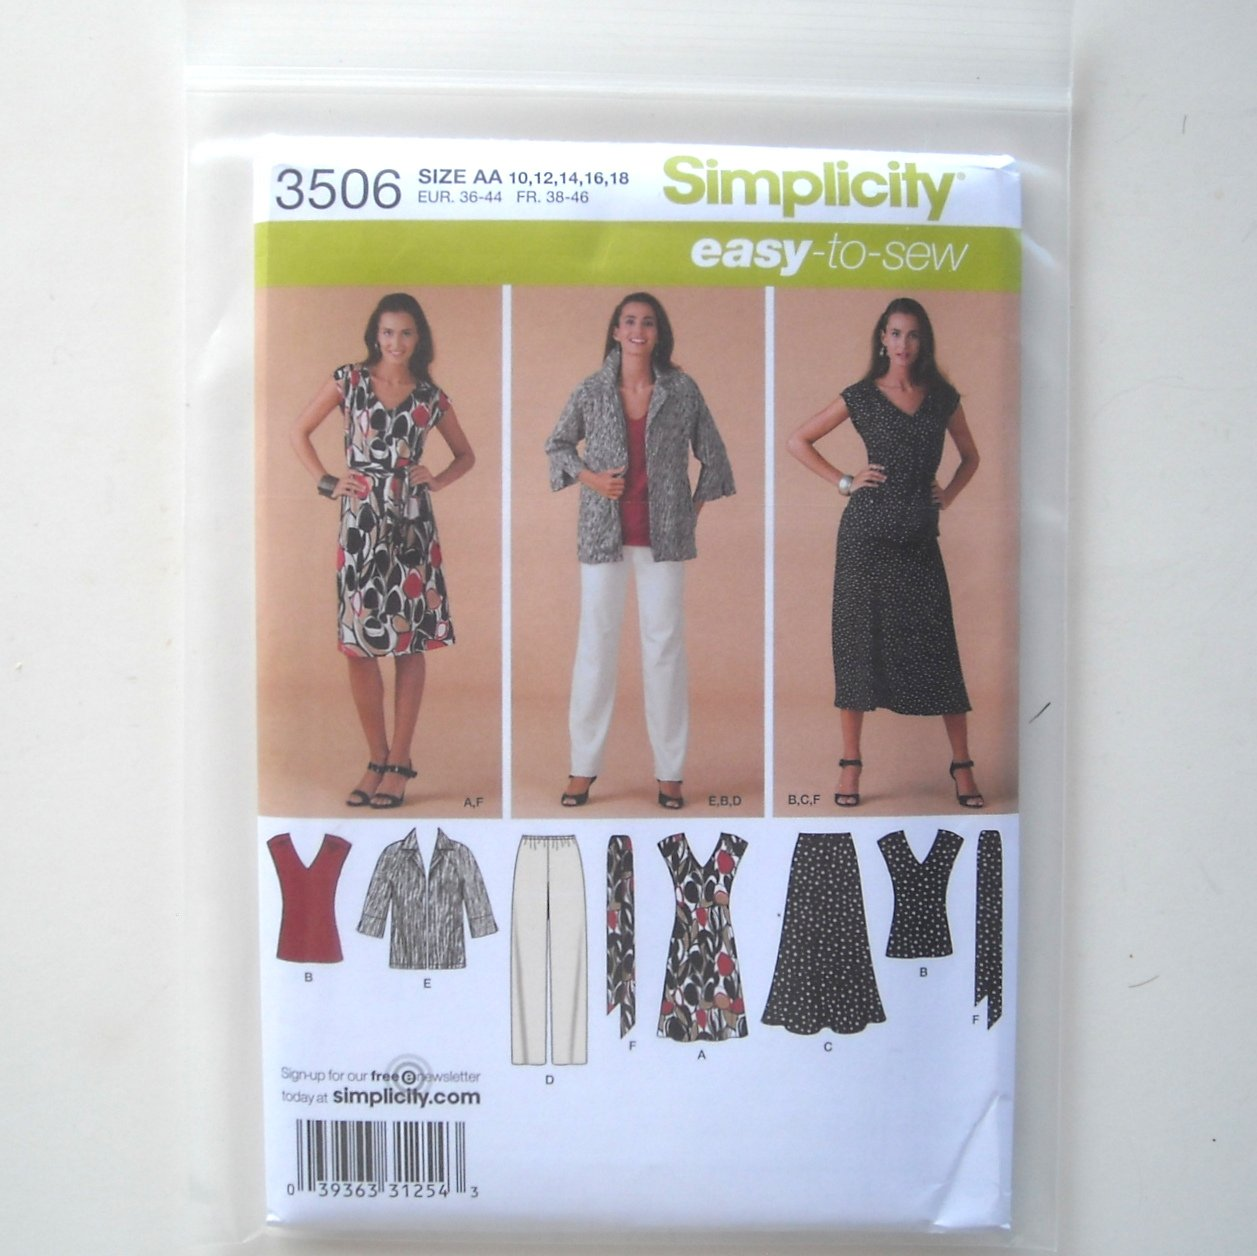 Simplicity Pattern 3506 Size 10 - 18 Easy To Sew Misses Womens Dress Top Skirt Pants Jacket